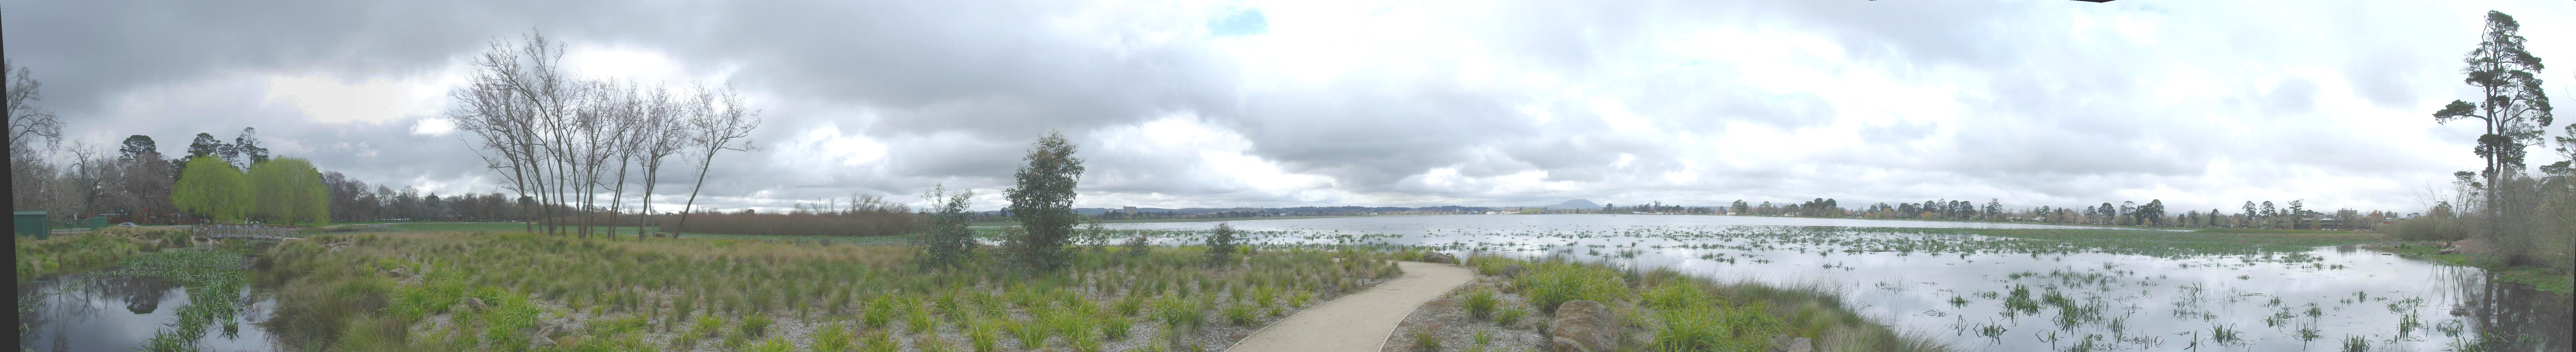 Lake-Wendouree-try2.jpeg